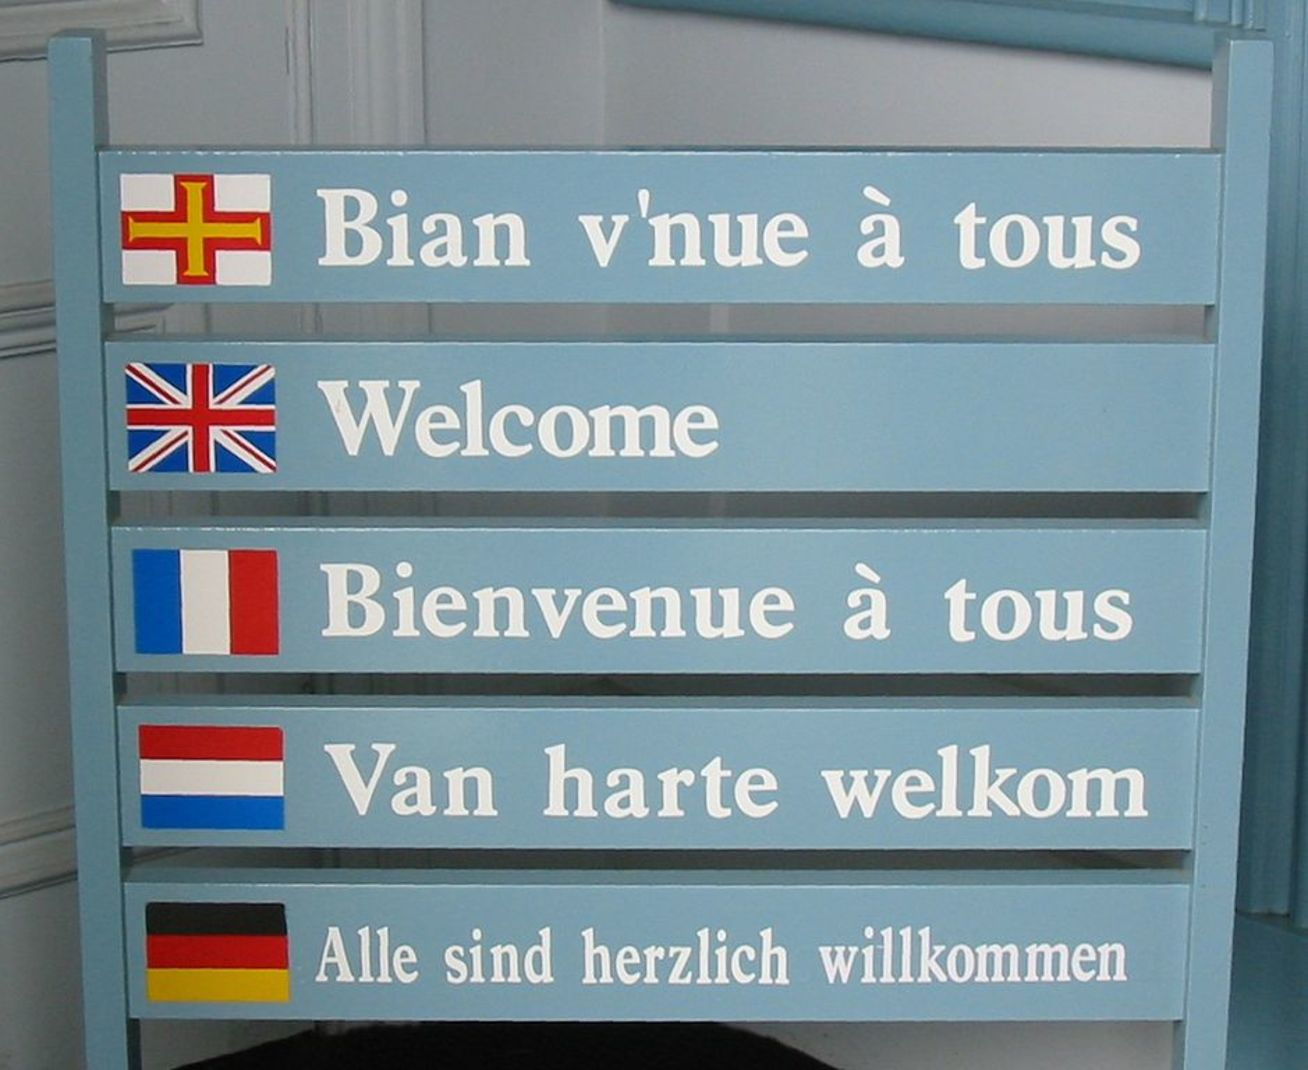 Why do some places have many languages, and others only a few?  Photo credit: Man vyi/Wikimedia [Licensed under CC BY 1.0]